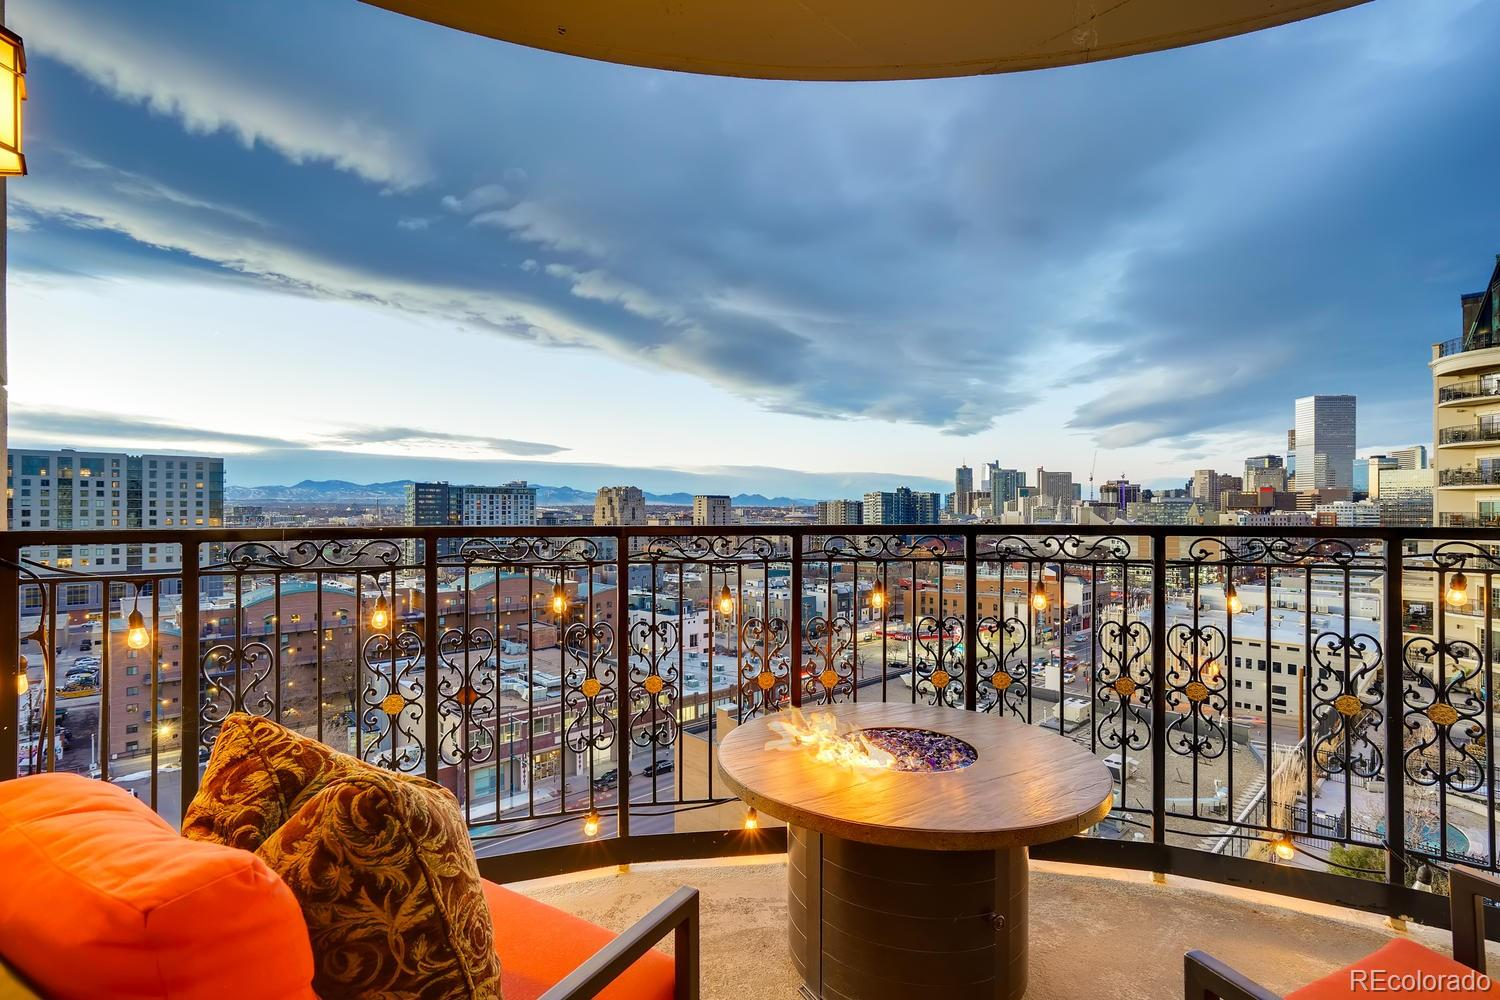 Welcome to the Beauvallon, renowned Elegance in Downtown Denver. This unit has been fully remodeled and includes 2 reserved parking spaces located in a heated secure garage. This well thought out floor plan with new carpet and tile floors includes a large gourmet kitchen stainless steel appliances, stunning cabinetry with granite countertops. Unit was taken to the studs and everything in the unit is new and upgraded.  The second bathroom shower has been expanded to include a rain shower head and body spray heads with unlimited hot watered included in HOA fees. Unit includes, home office, media room, laundry room washer and dryer included. Step out onto your own private covered patio to enjoy the warm glow of the modern gas balcony fire pit.  The spacious formal dinning area is perfect to enjoy your panaramic mountain views and watch the city light up with its twinkling skyscapers.  Retreat to your private master bedroom with a private balcony and large private spa like master bathroom. Wall Closet/cabinet in master bath room Currently installed and In Place Not Included.